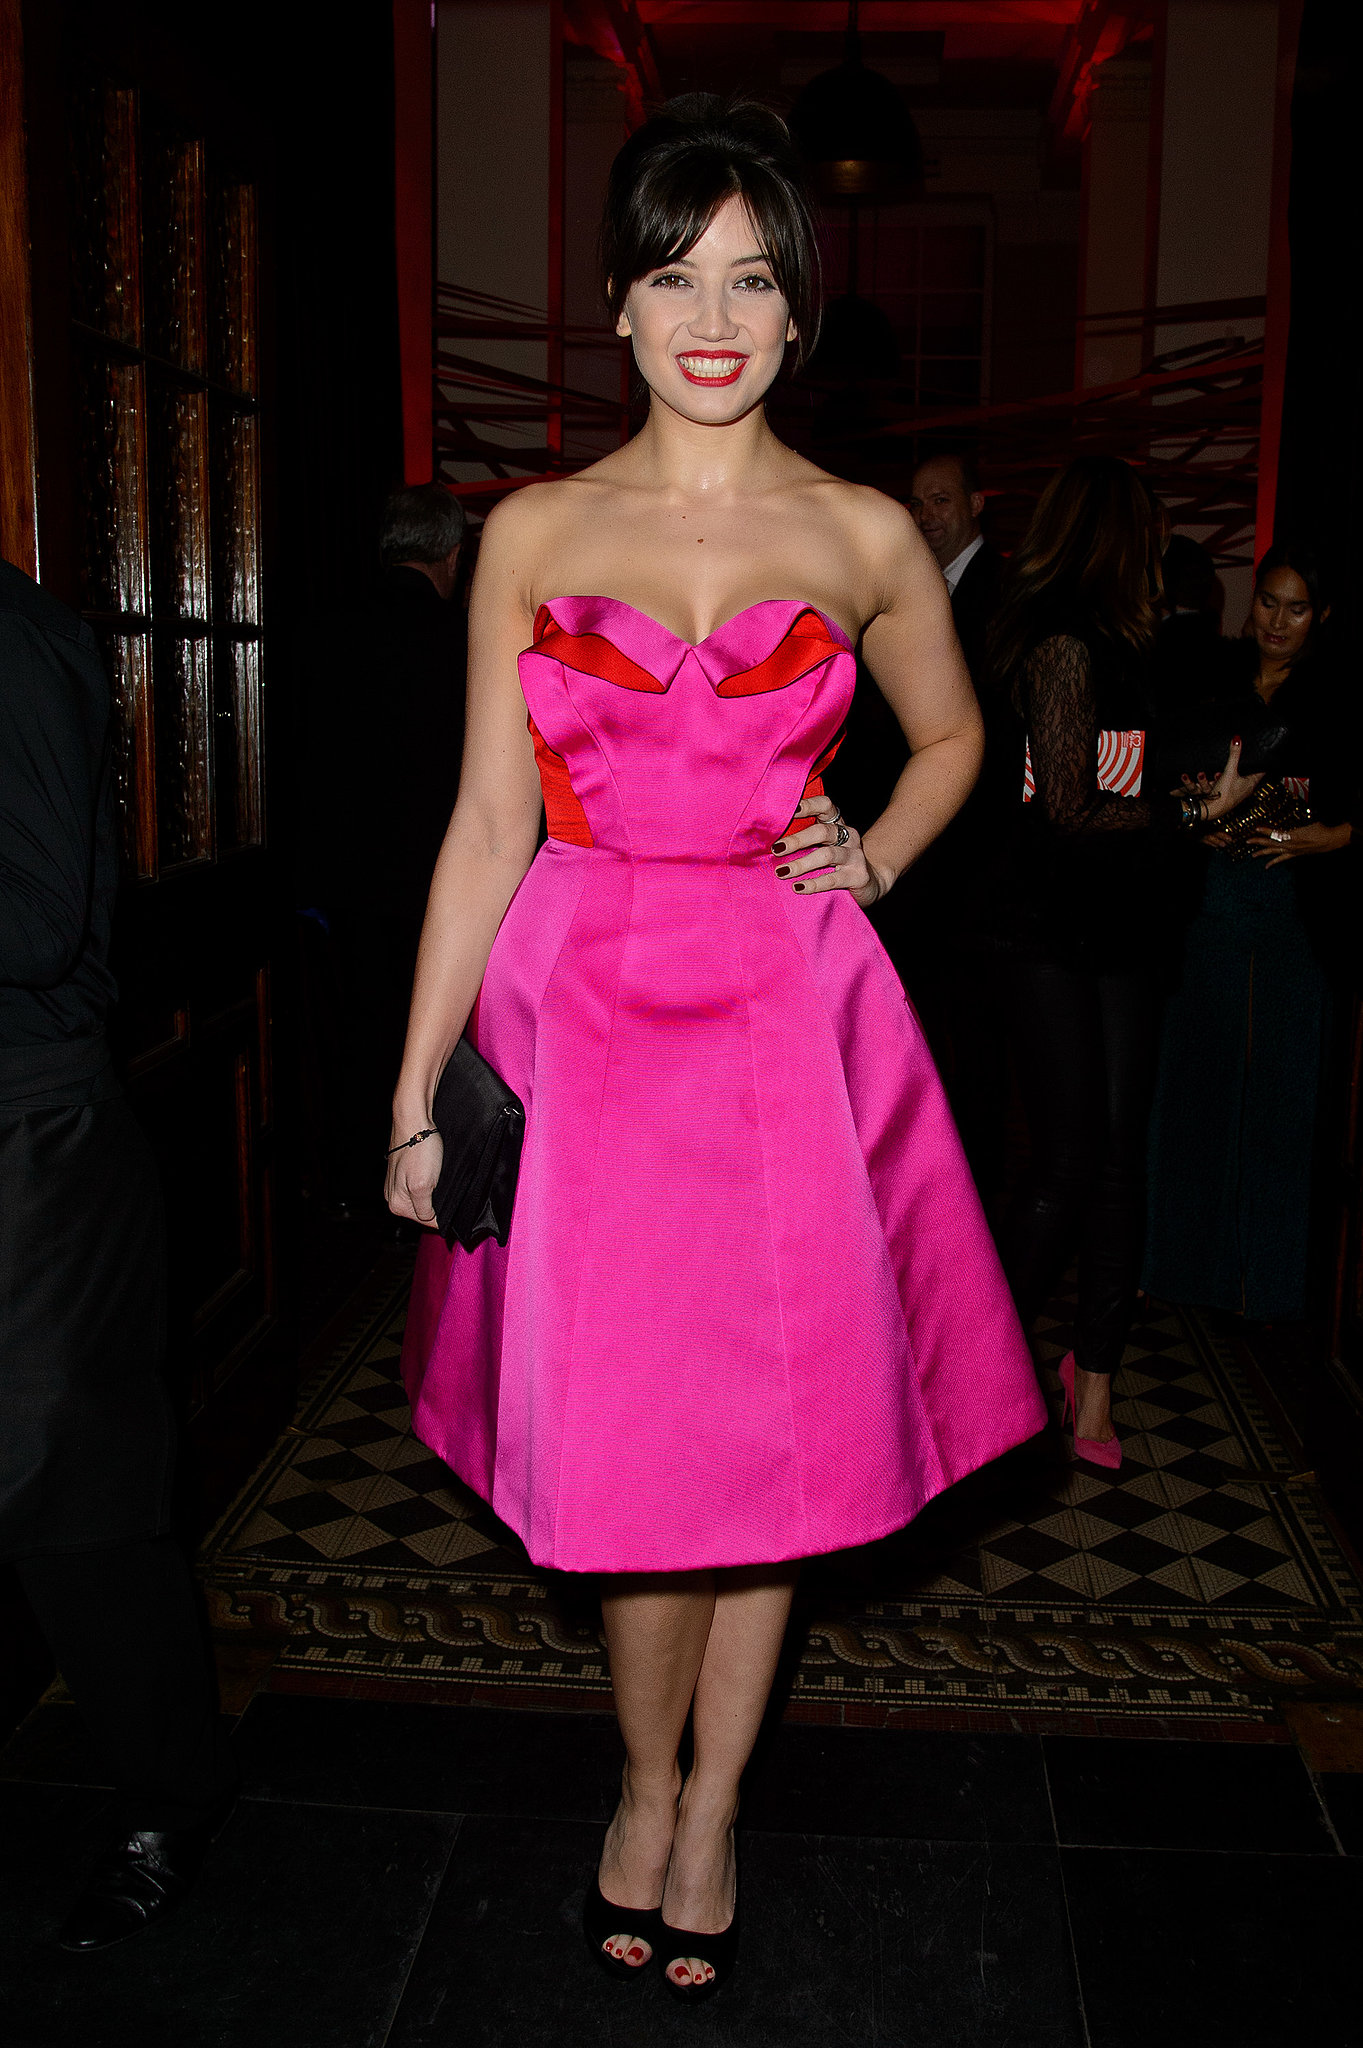 Daisy Lowe in Miu Miu at the Tunnel of Love fundraiser.